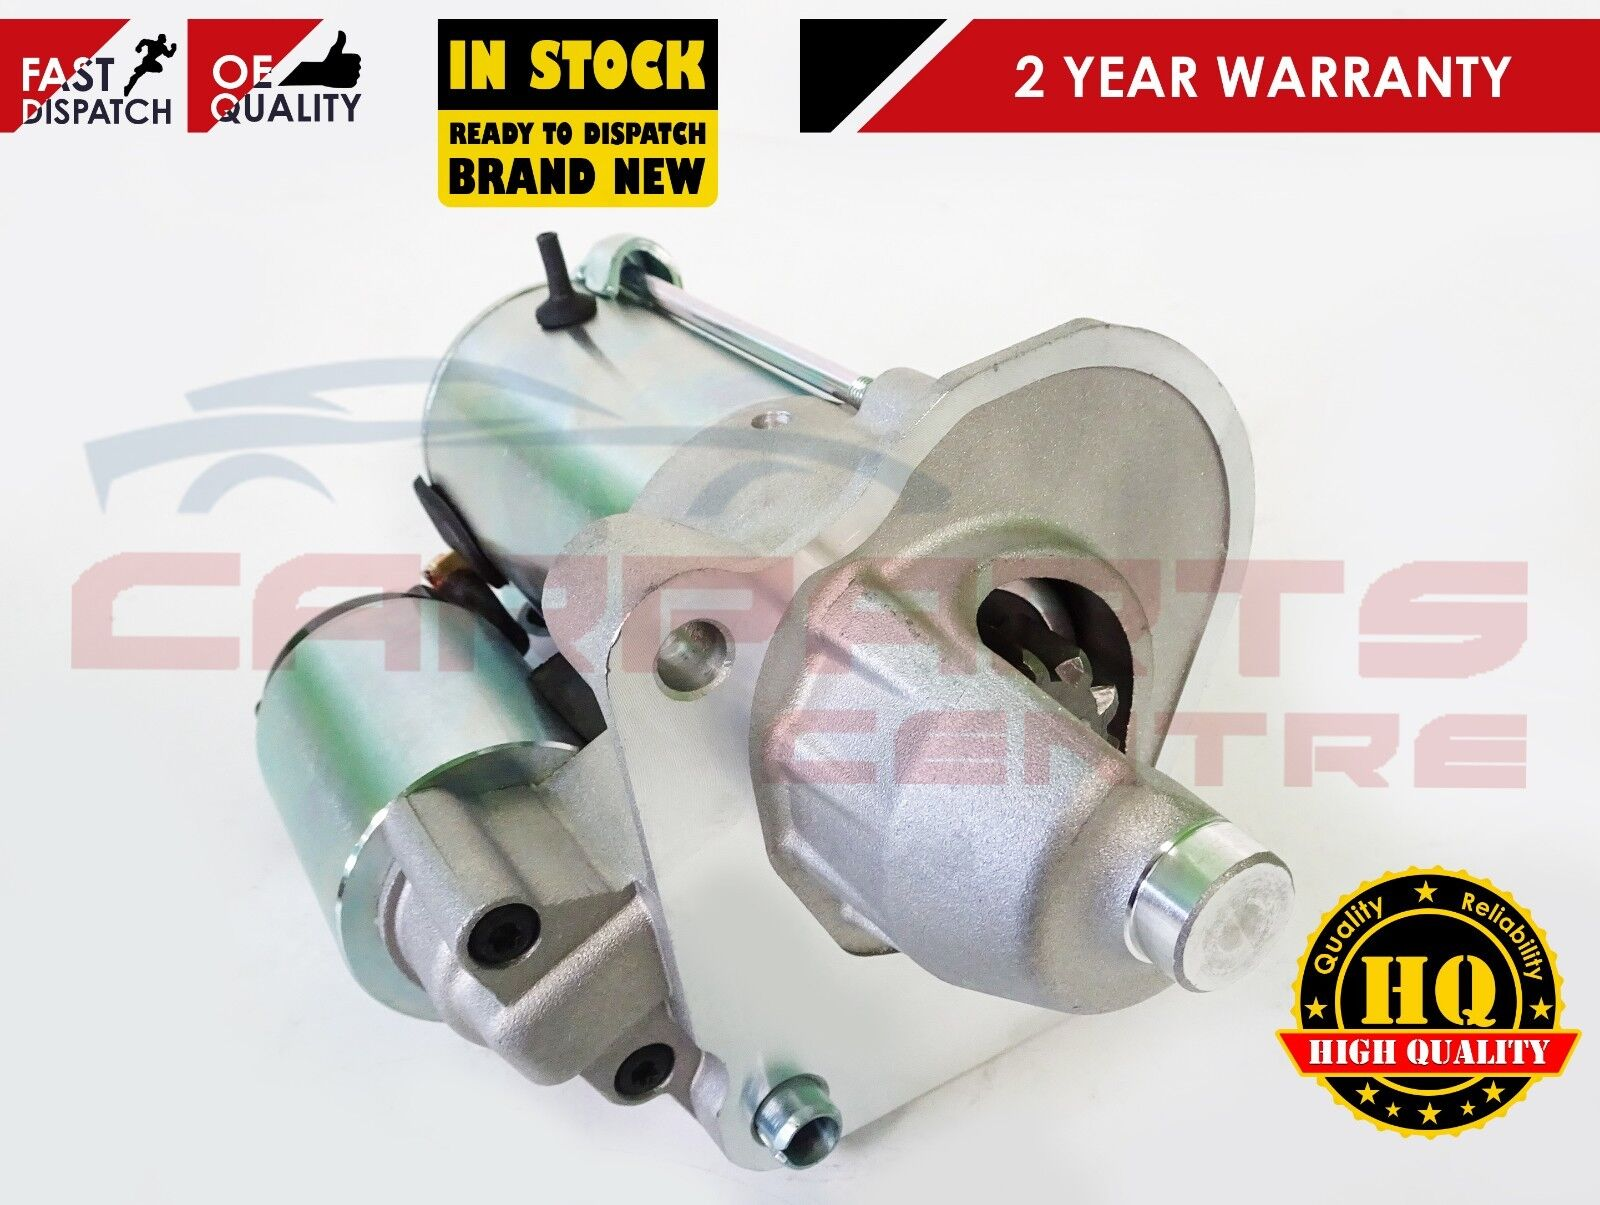 FOR FORD FOCUS MK2 C-MAX MPV 2.0TD TDCi BRAND NEW STARTER MOTOR OE QUALITY 2004